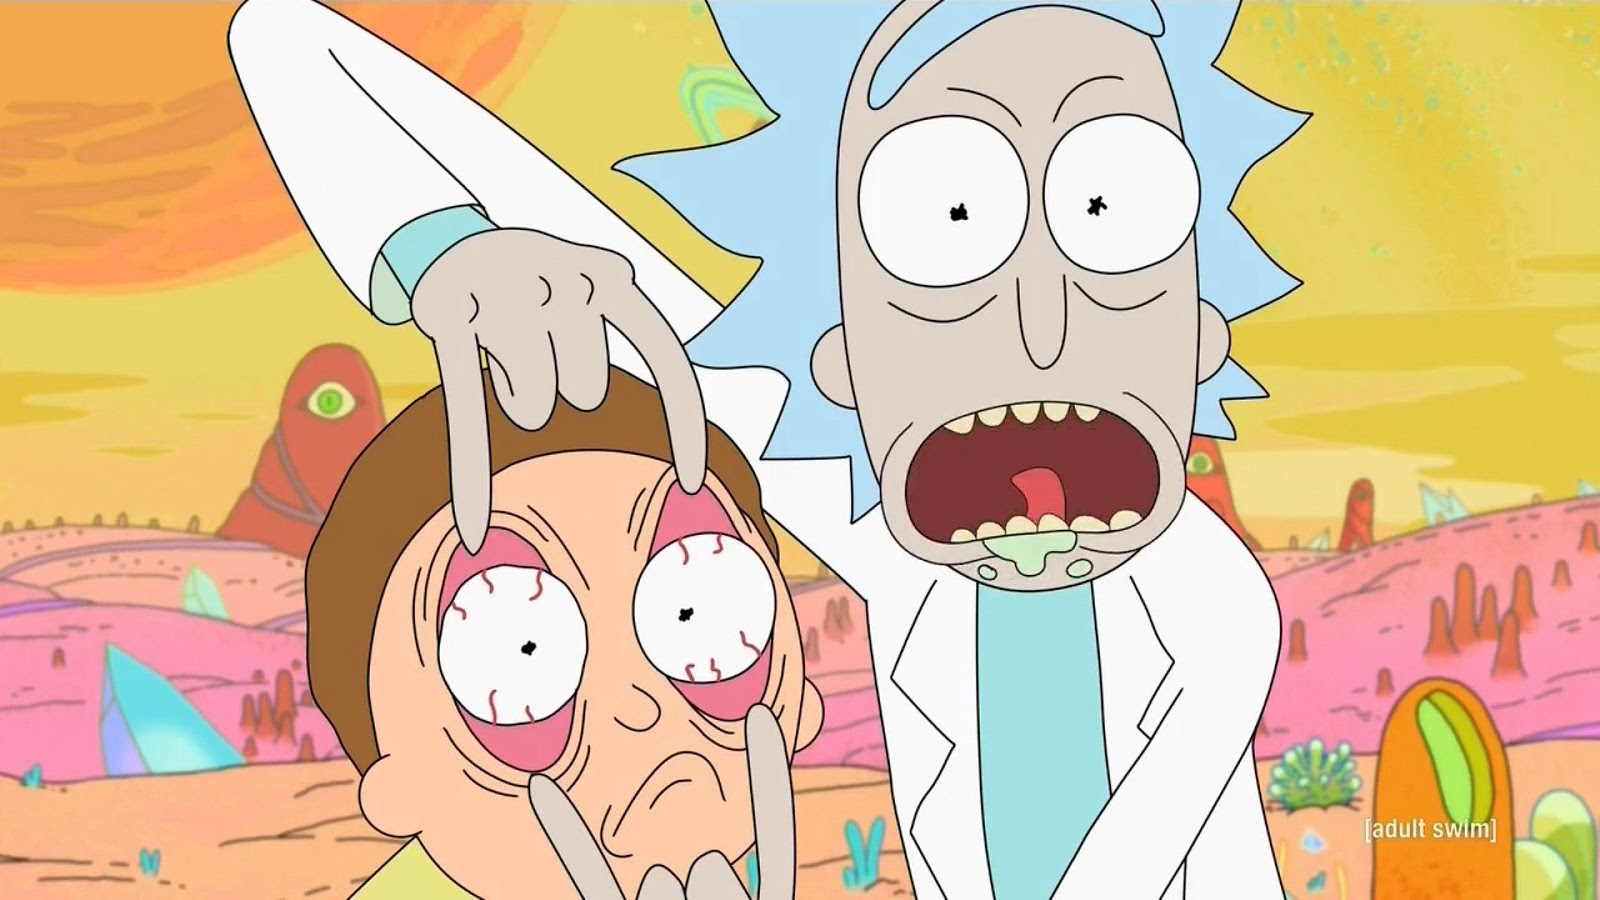 Rick Sanchez y Morty Smith en una escena de 'Rick and Morty'